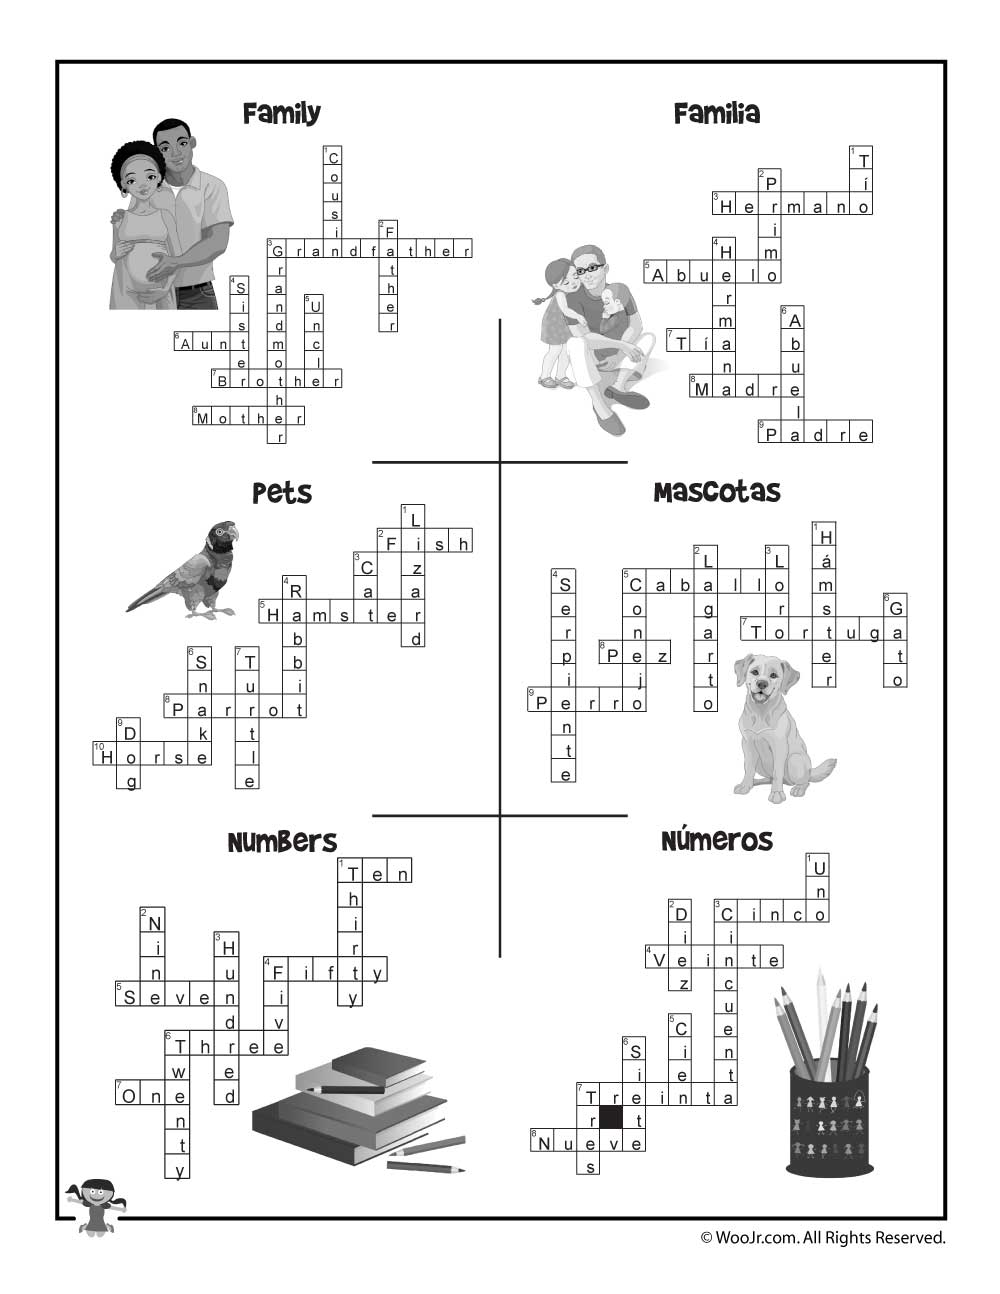 Spanish Crossword Puzzles Use Our Special Click To Print Button Send Only The Image Your Printer